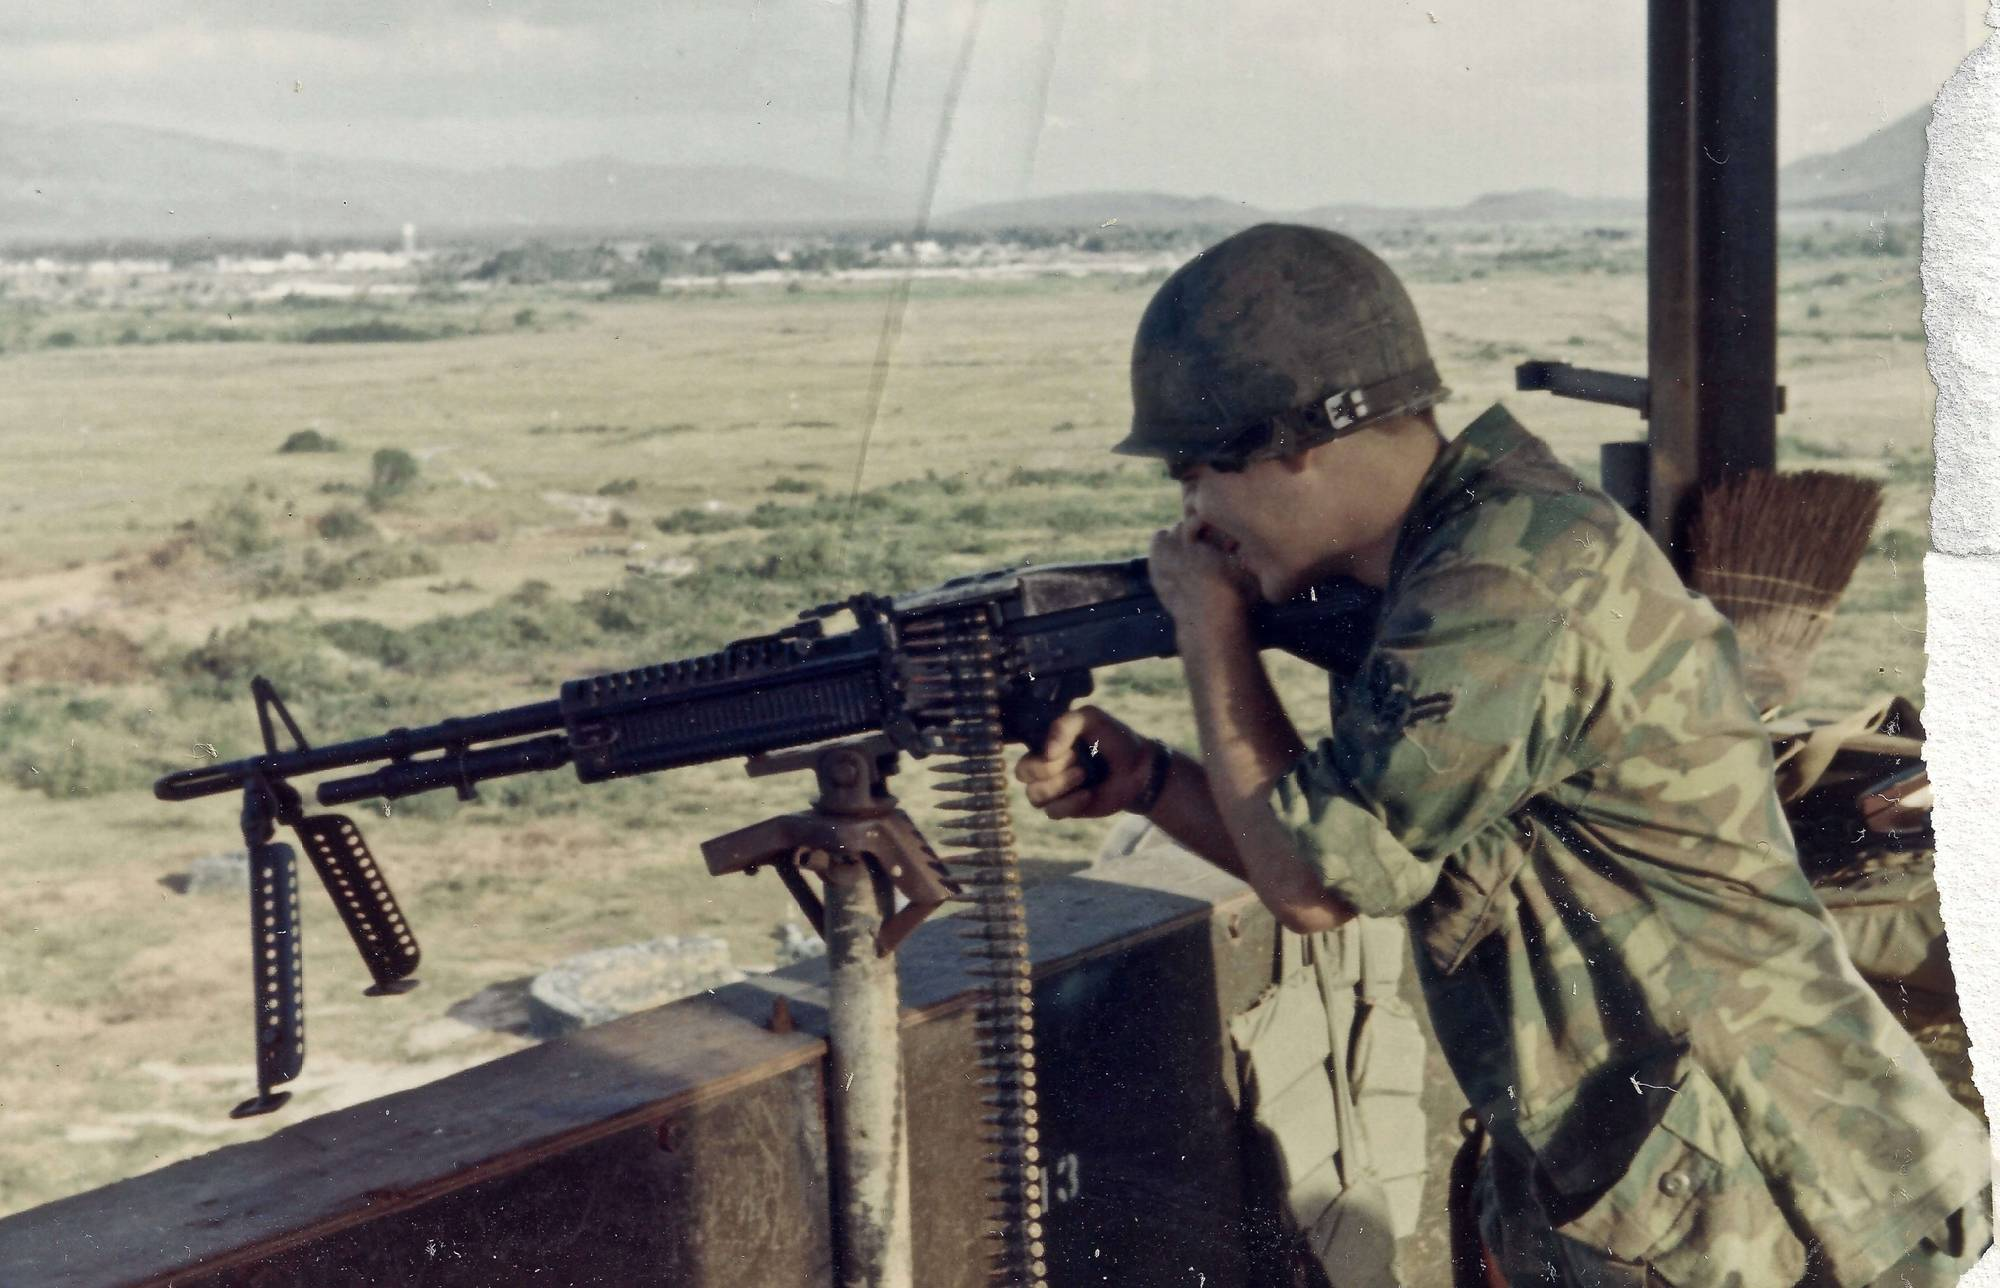 Young soldier in a watch tower, shooting an M-60 rifle.